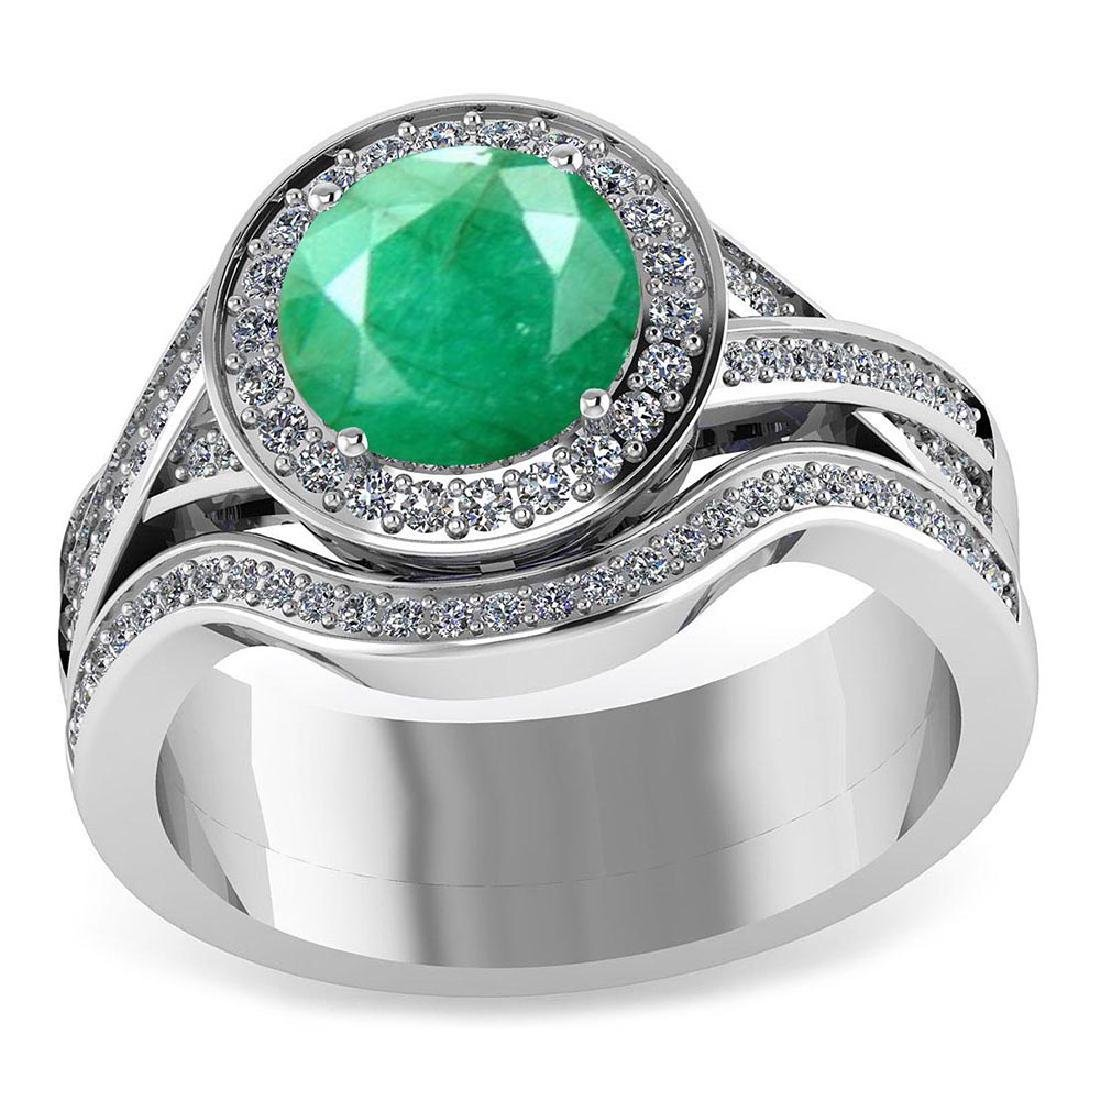 Certified 2.05 CTW Genuine Emerald And Diamond 14K Whit